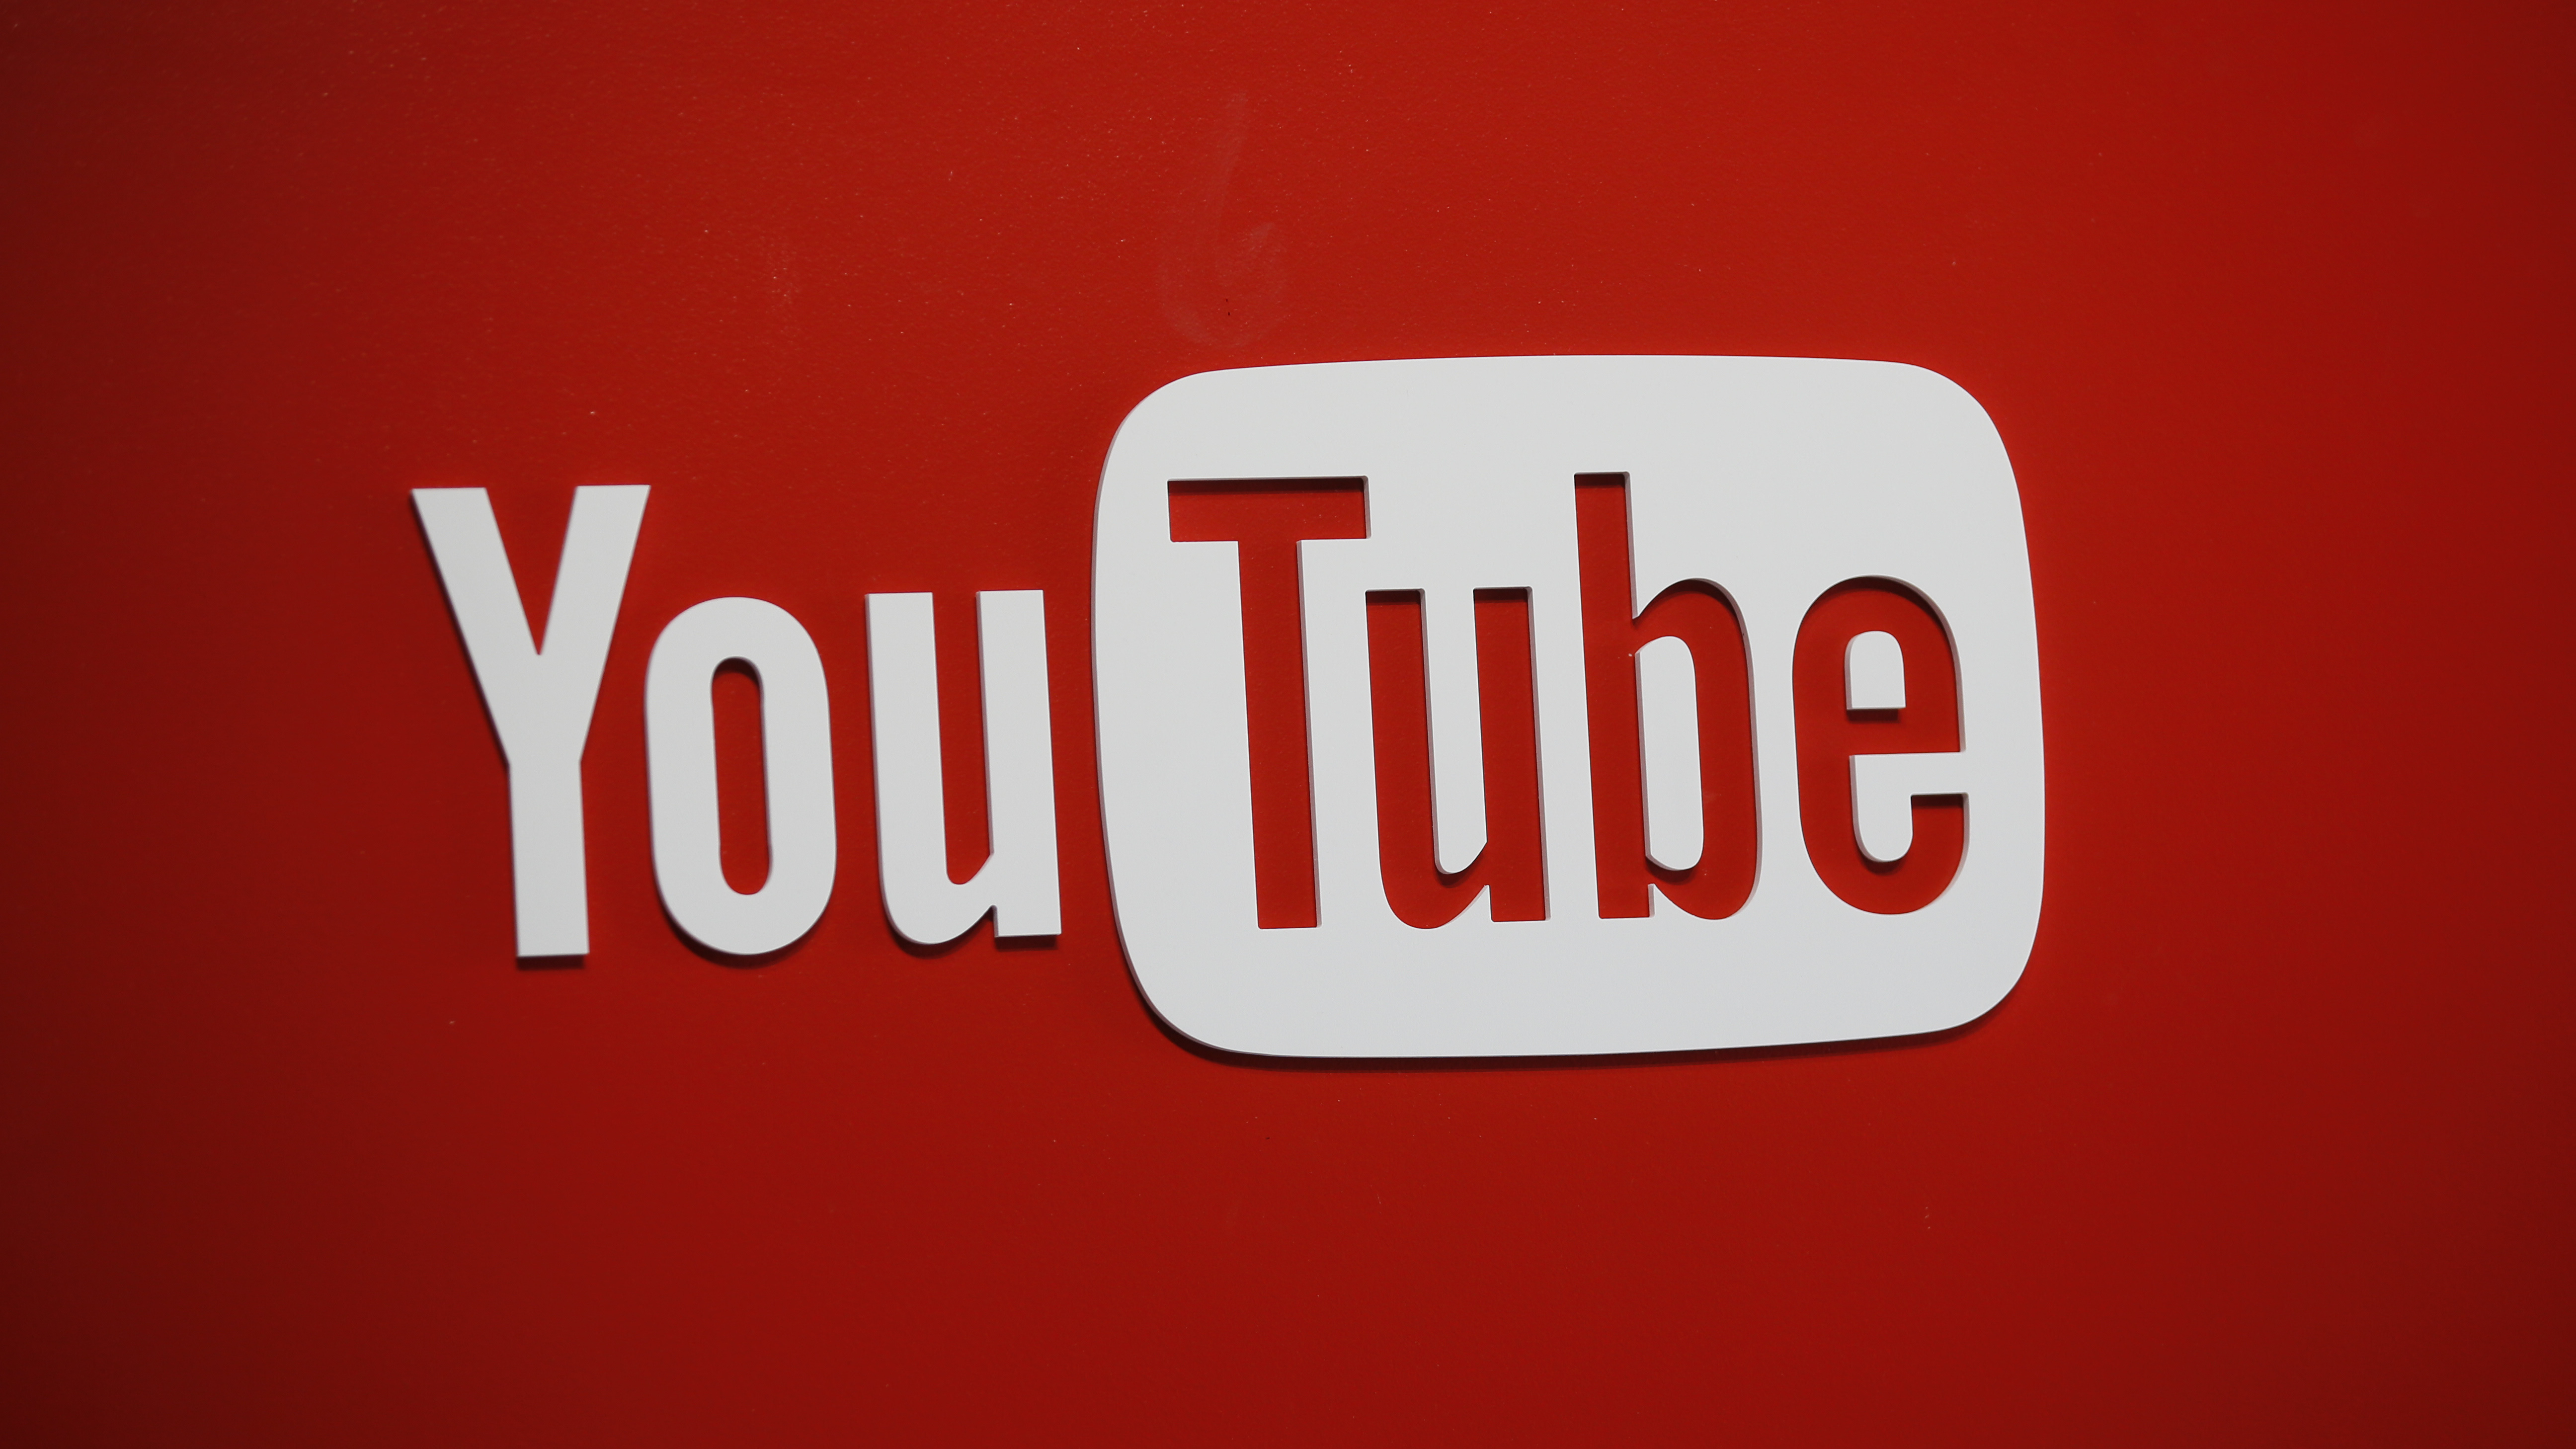 Online Video Producers Caught In Struggle Between